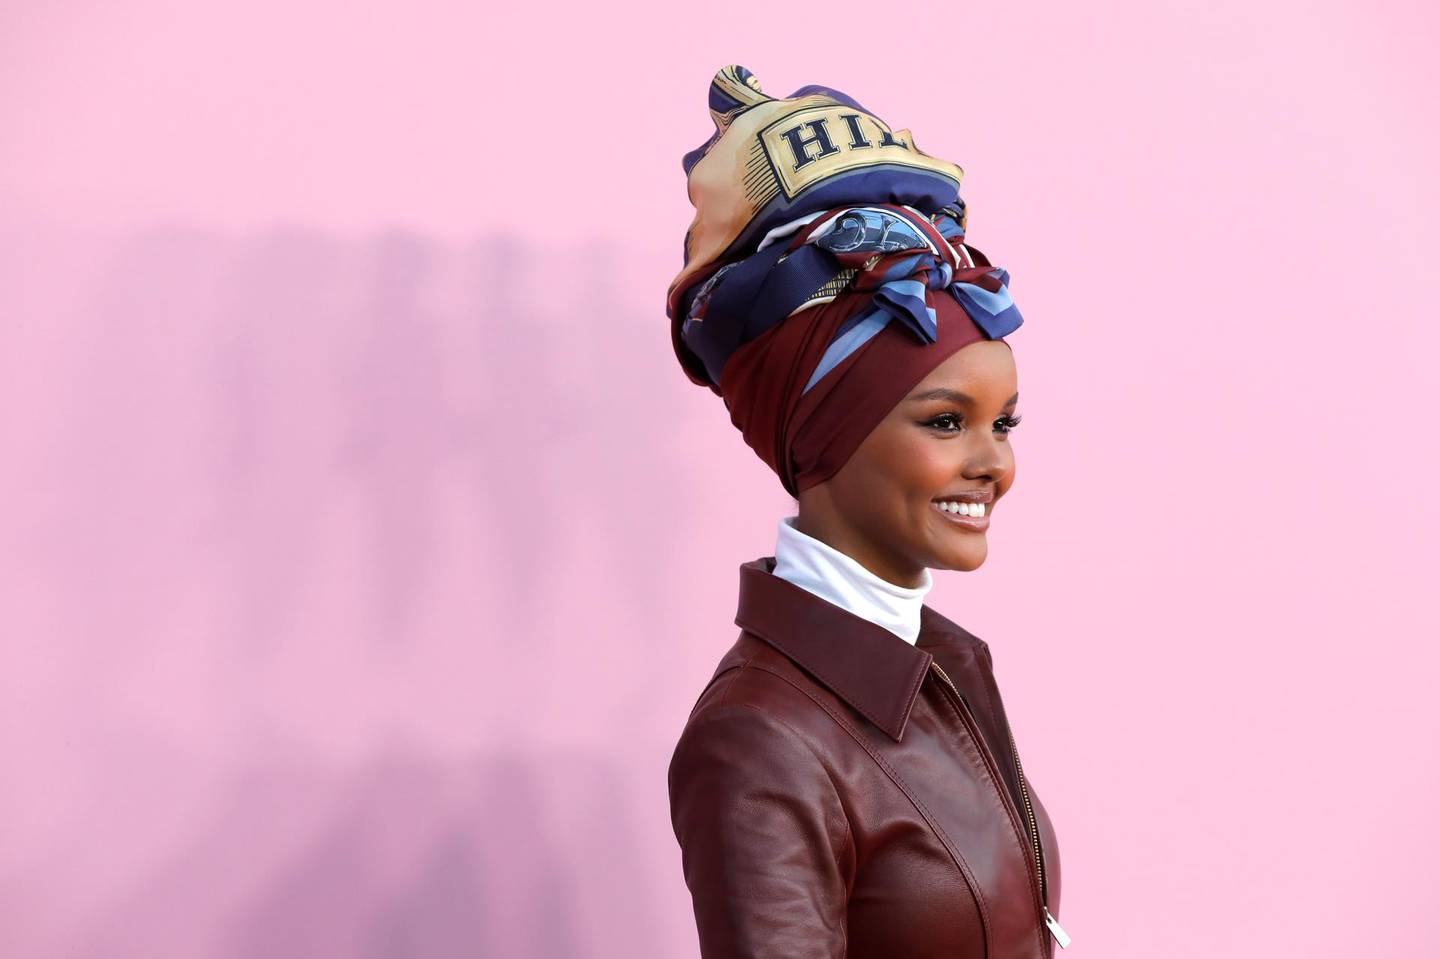 Model Halima Aden arrives for the 2019 CFDA Awards at The Brooklyn Museum in New York, U.S., June 3, 2019. REUTERS/Andrew Kelly